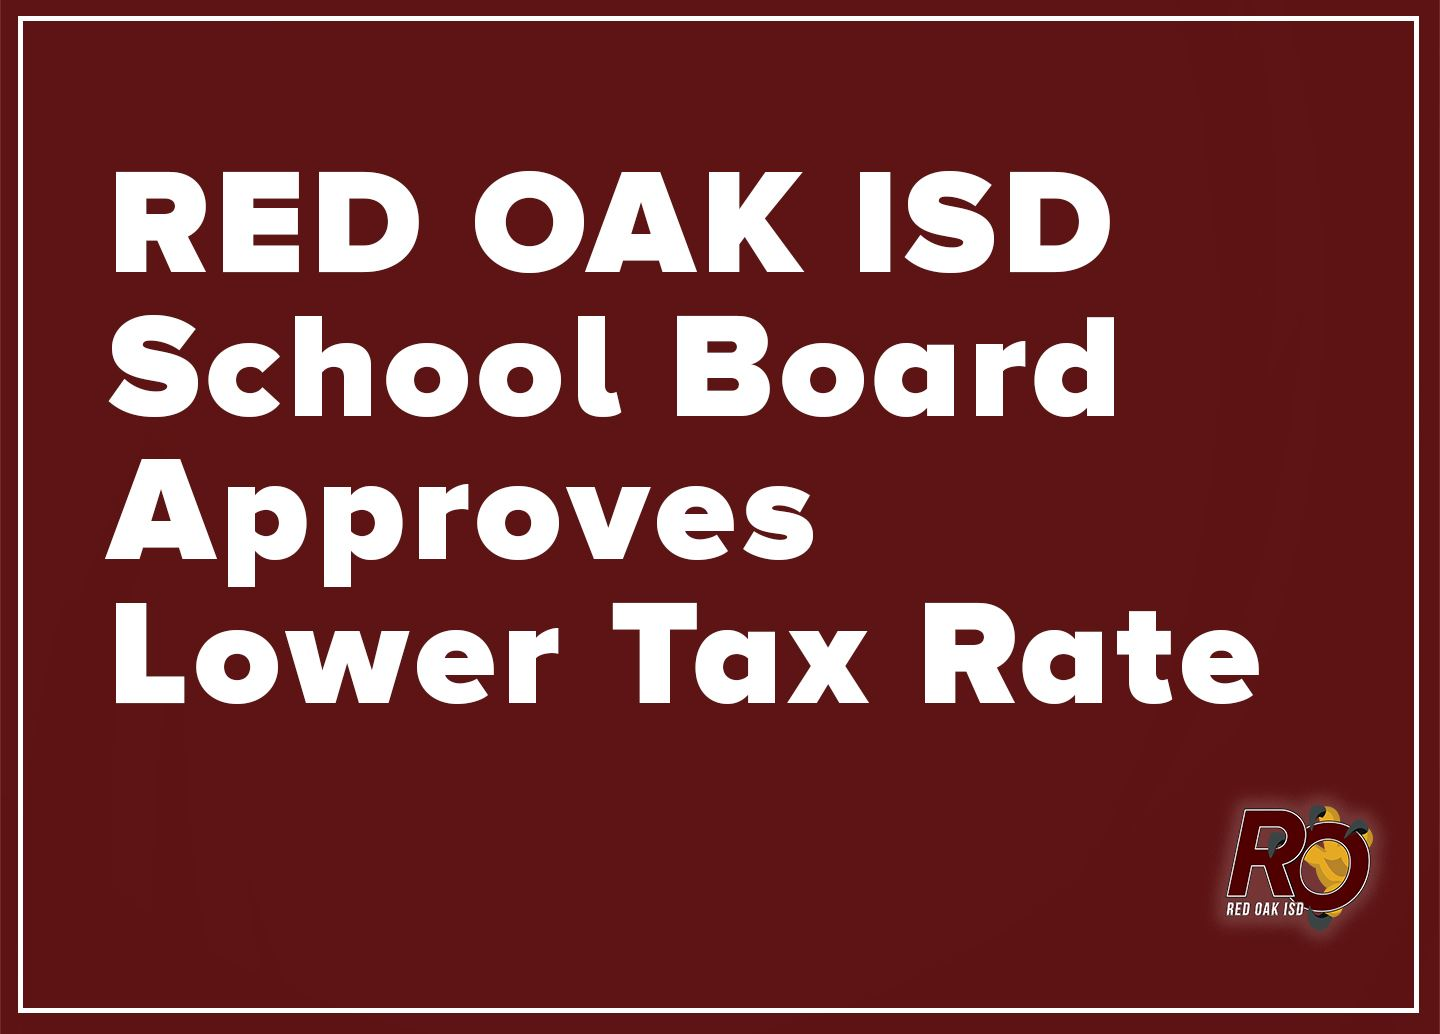 ROISD School Board approves lower tax rate